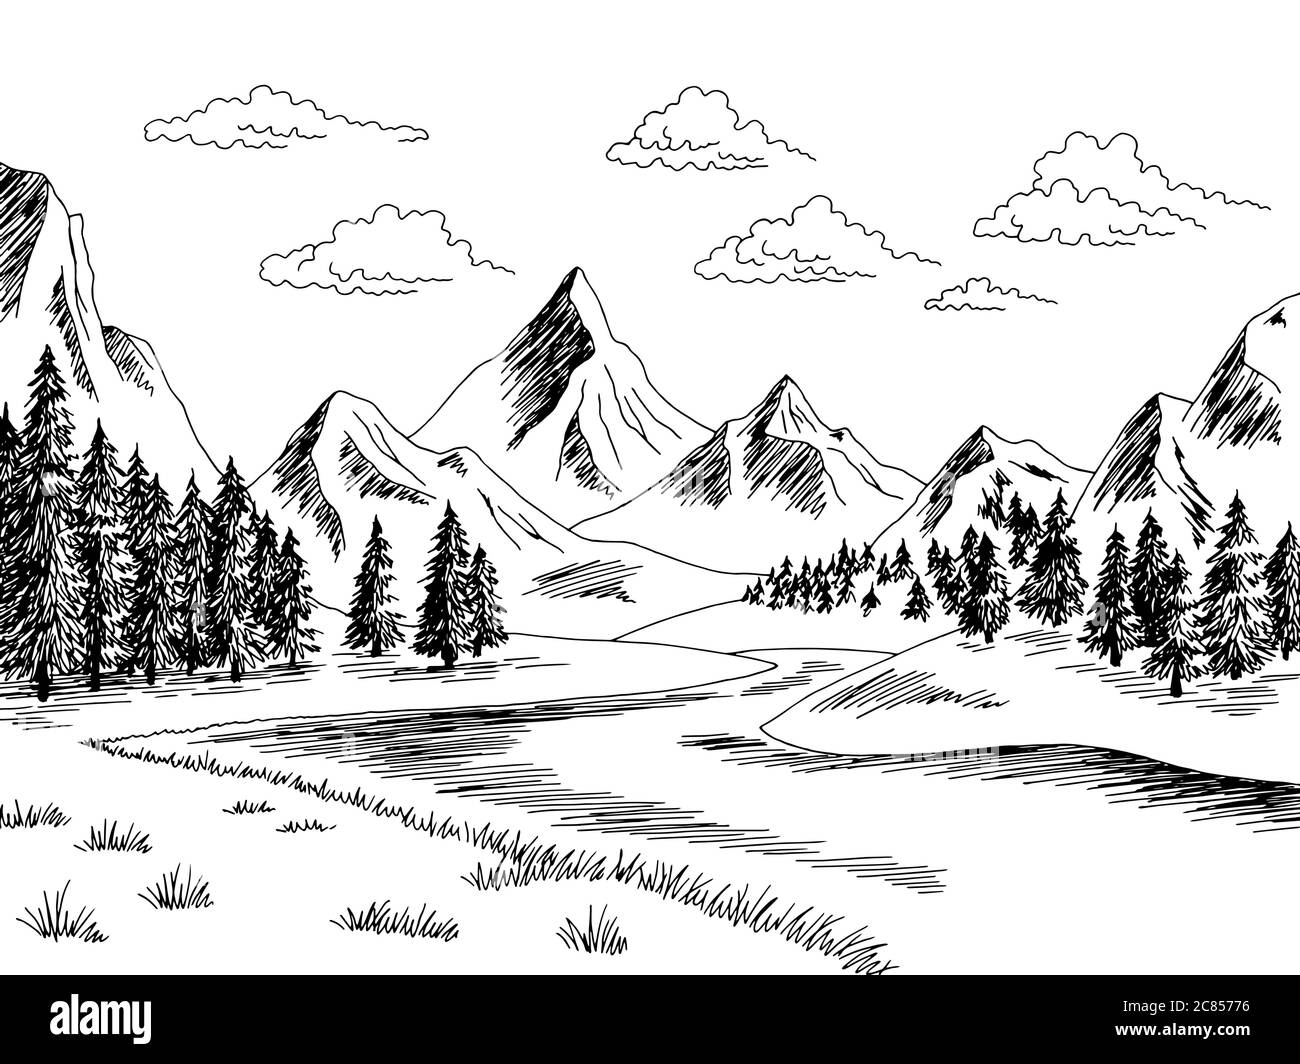 mountain river graphic black white landscape sketch illustration vector stock vector image art alamy https www alamy com mountain river graphic black white landscape sketch illustration vector image366450426 html